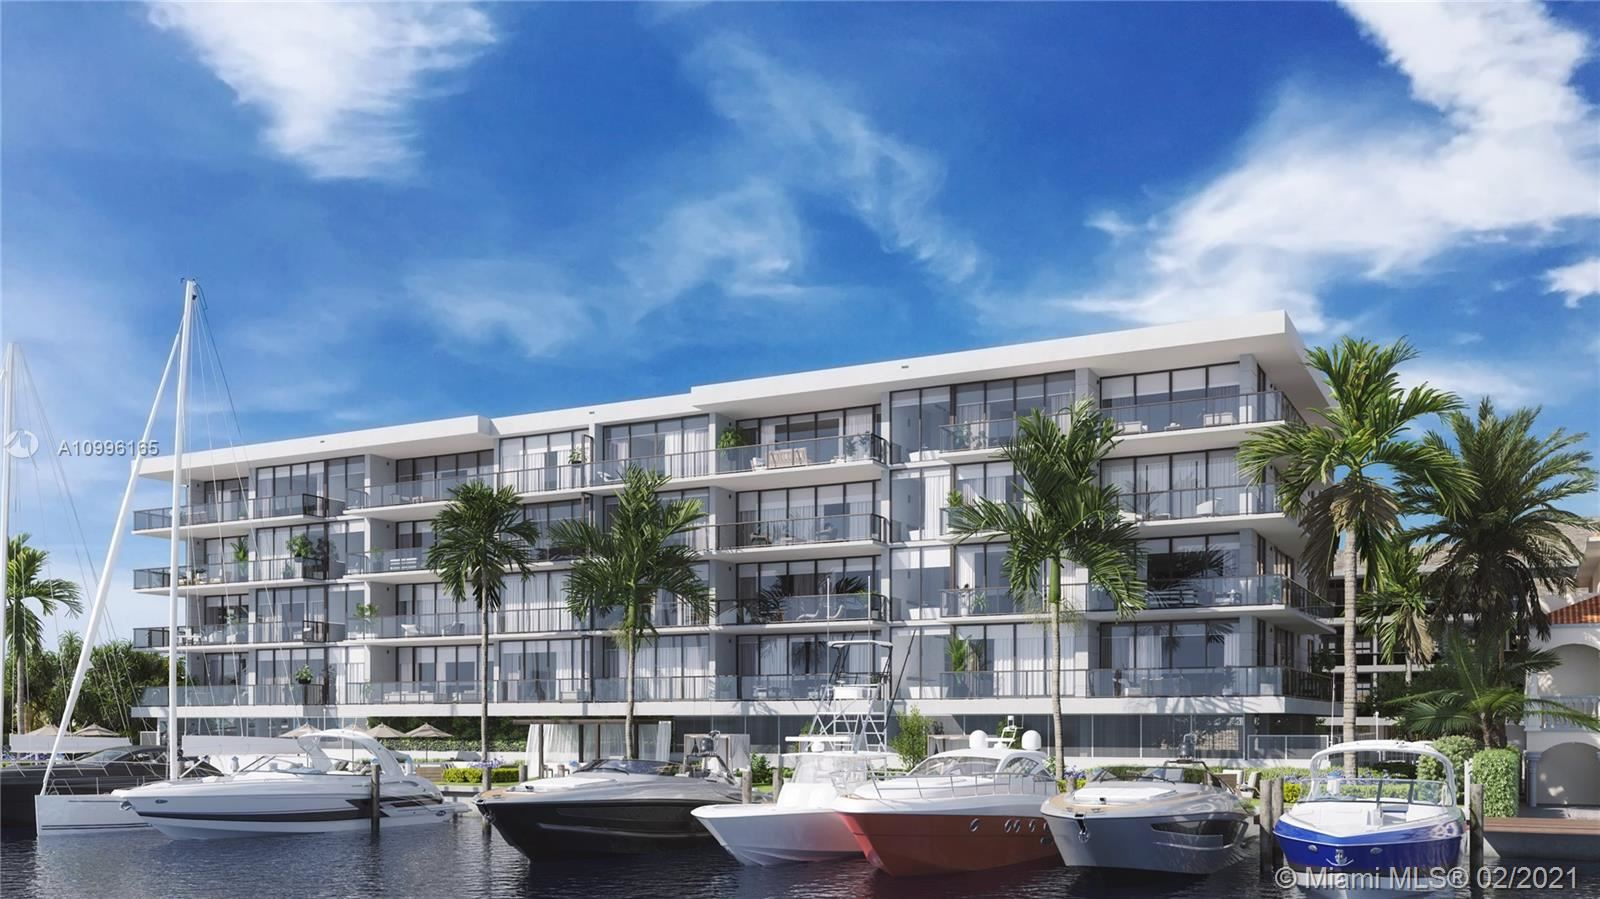 160 Isle Of Venice Dr. #404, Fort Lauderdale, FL 33301 - #: A10996165